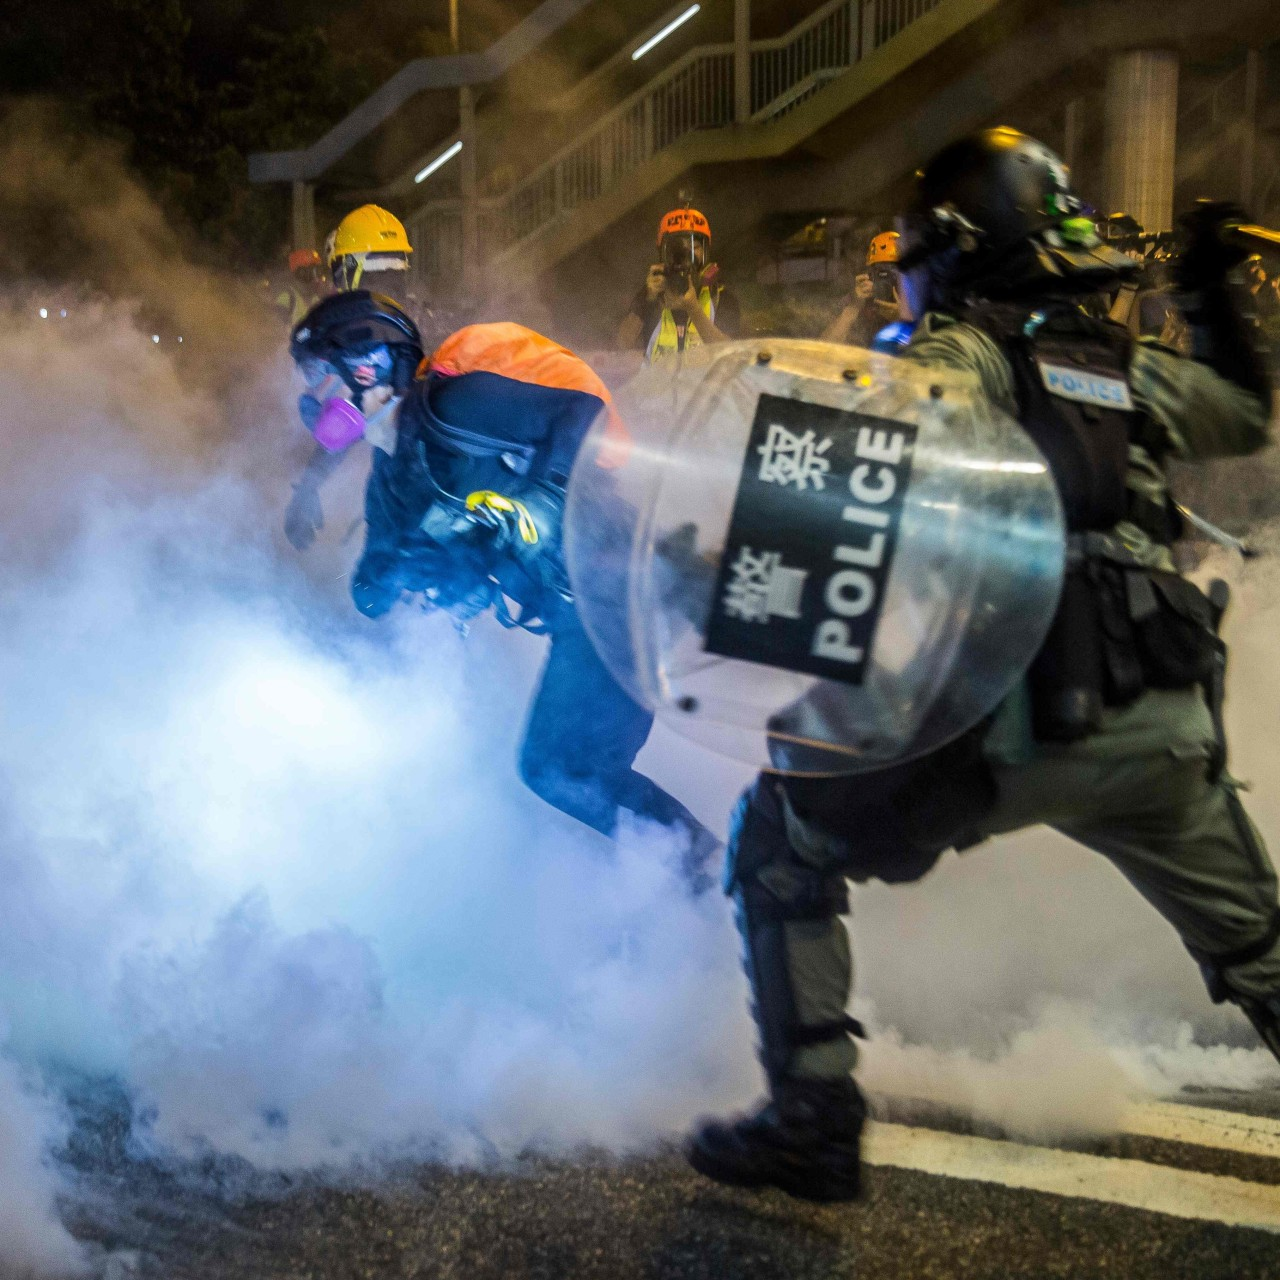 Chief Executive Carrie Lam's reframing of battle with protesters as